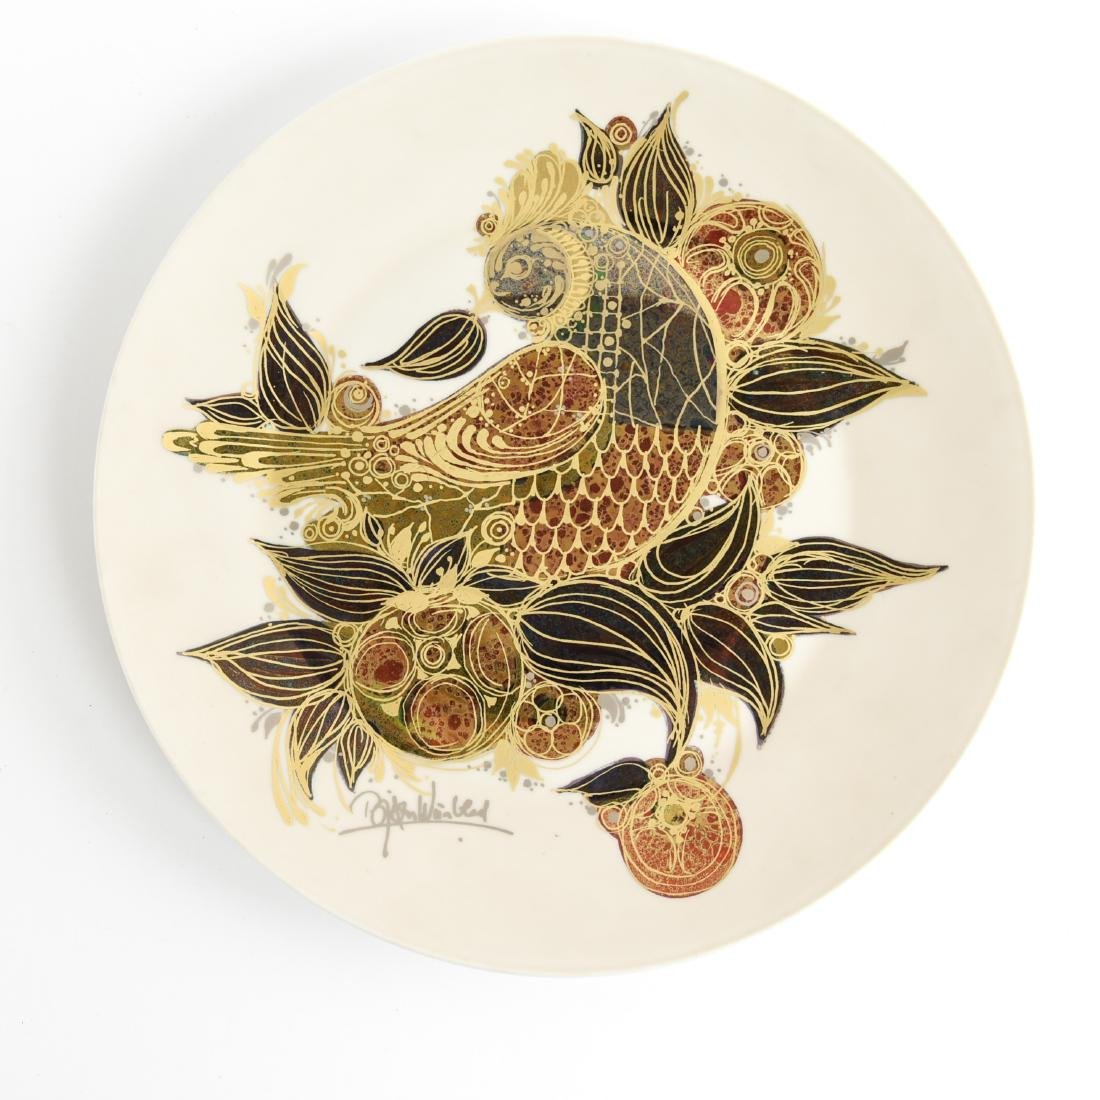 BJORN WINBLAAD FOR ROSENTHAL CERAMIC CHARGER PLATE